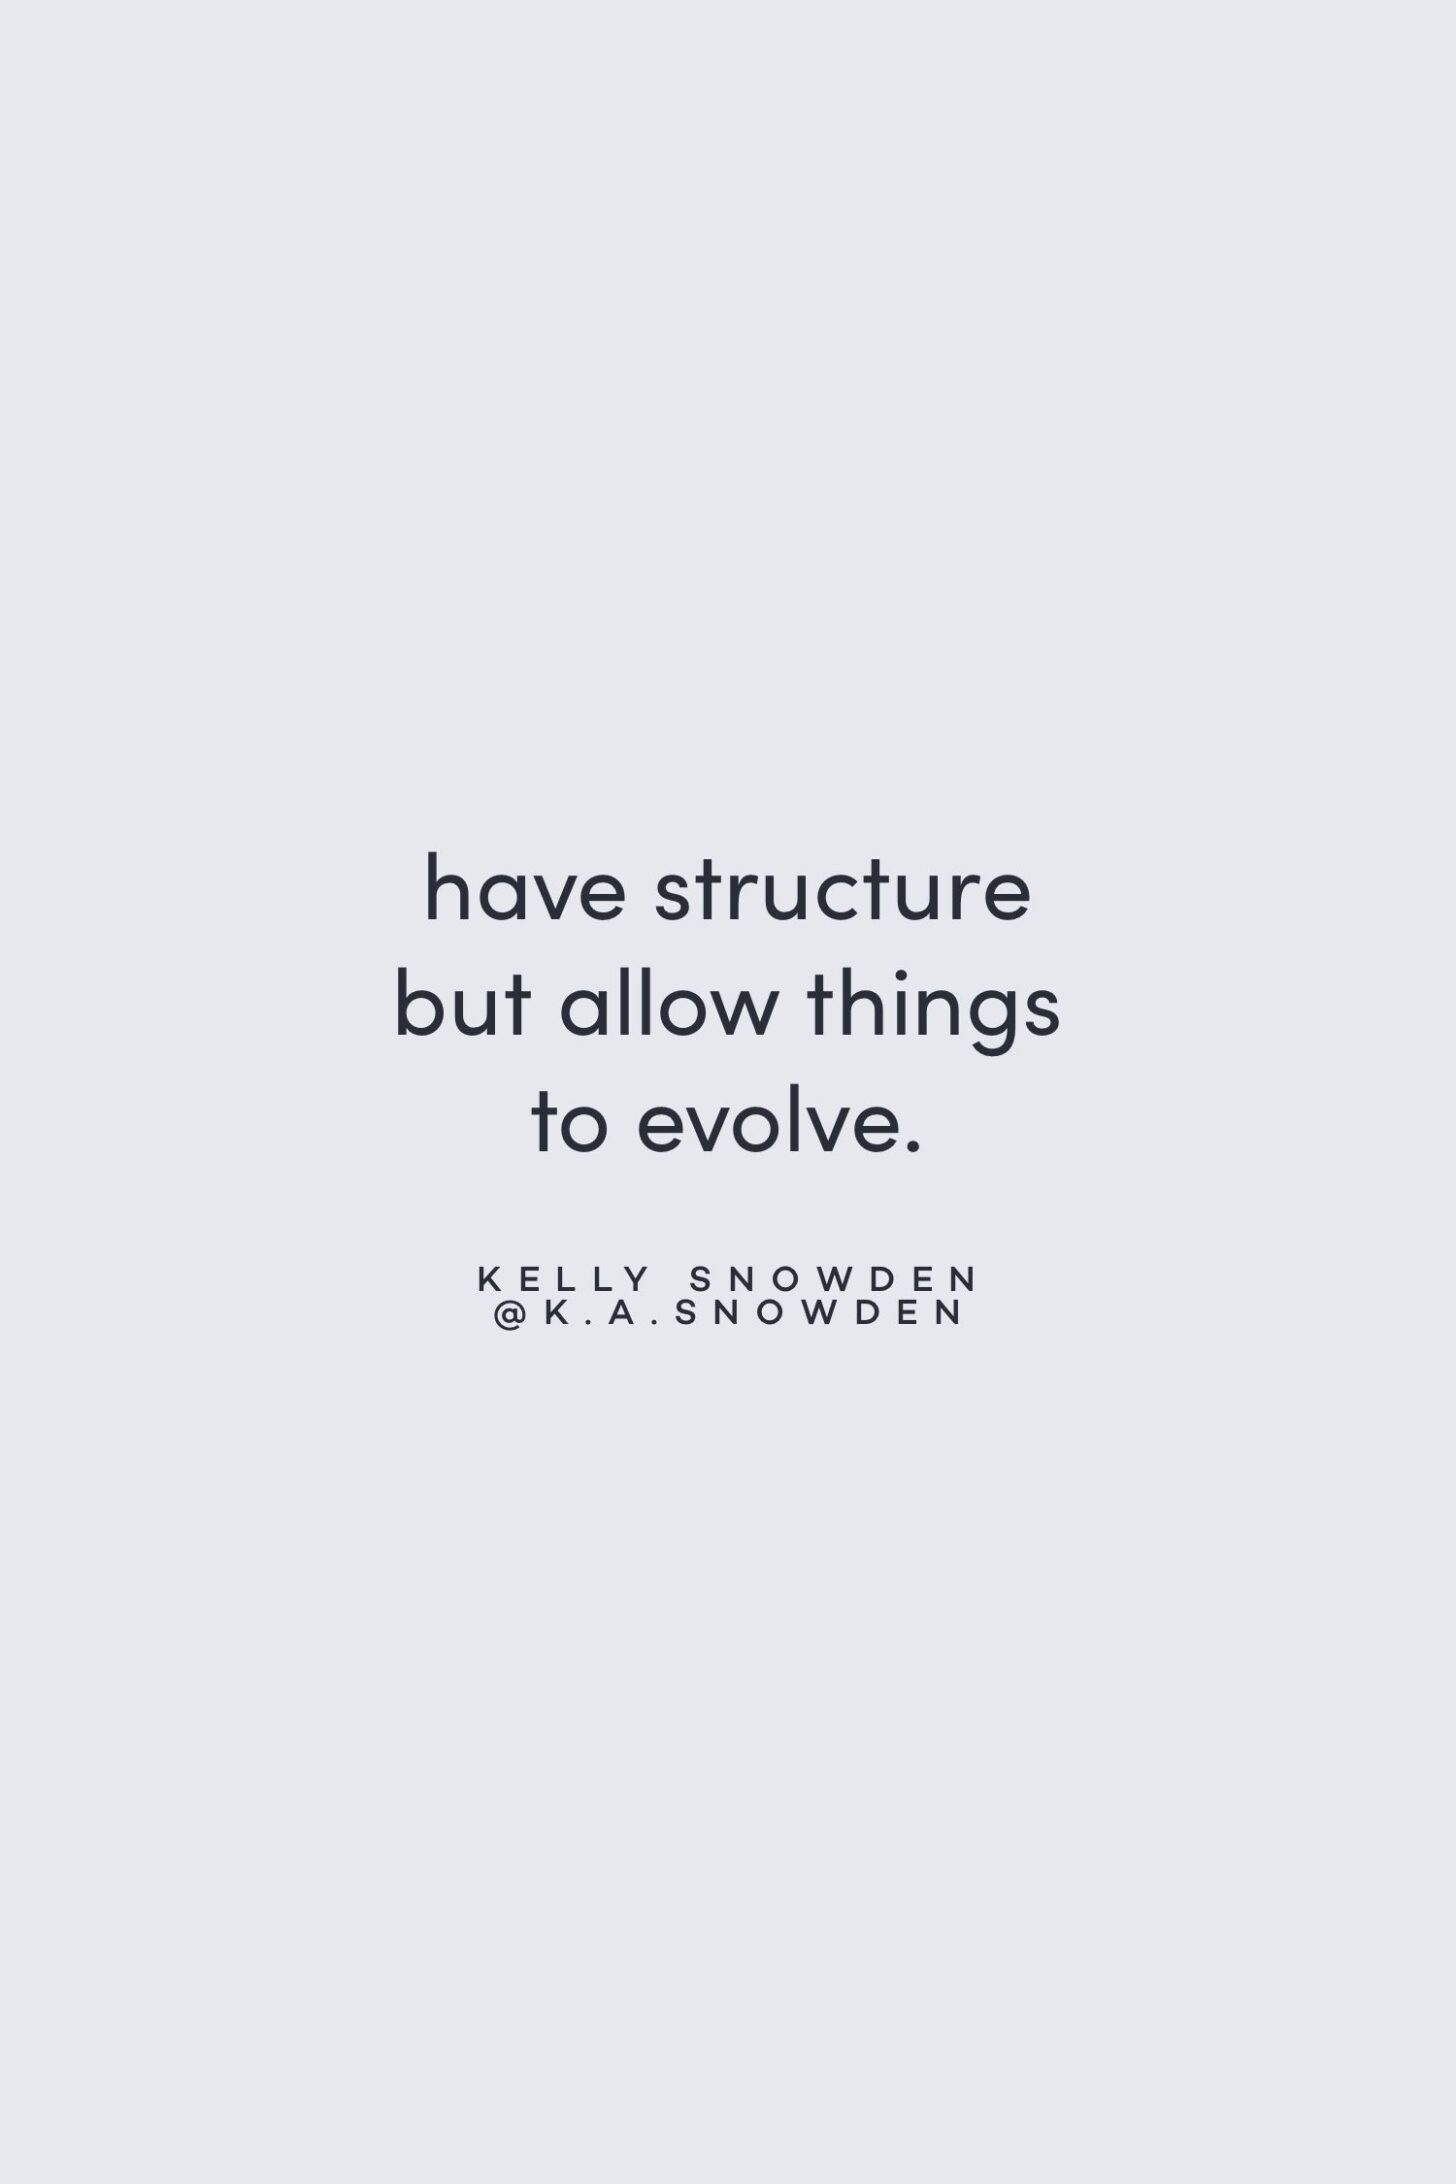 Quote on structure and flexibility by Kelly Snowden on the Feel Good Effect Podcast #realfoodwholelife #feelgoodeffectpodcast #motivationalquote #positivityquote #inspirationalquote #structurequote #priorityquote #flexibilityquote #perfectionismquote